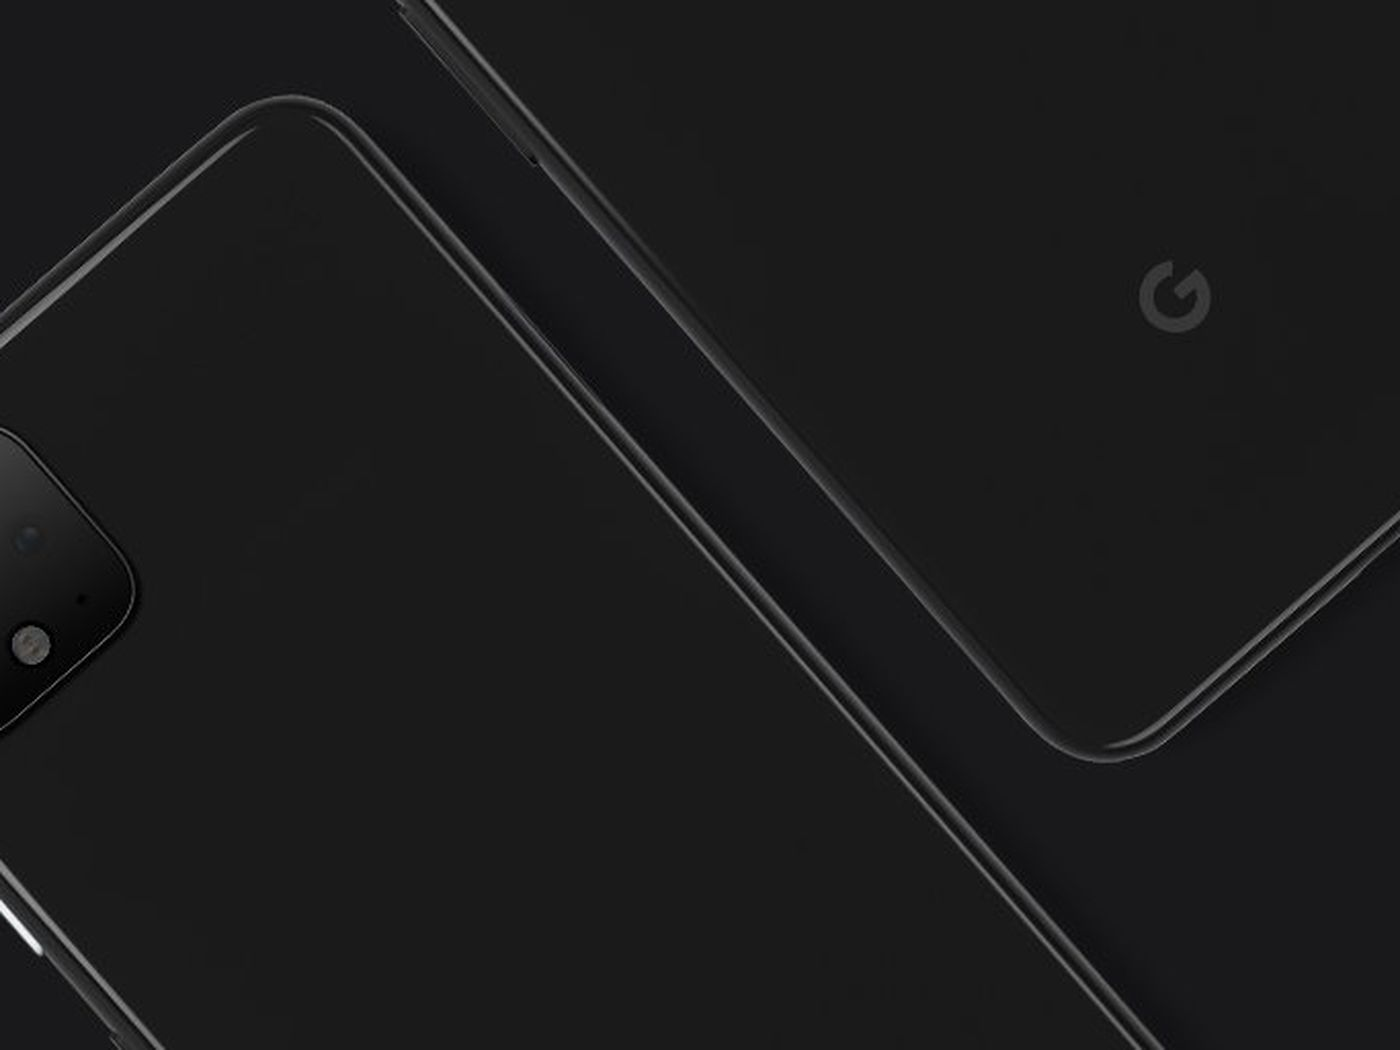 This is Google's Pixel 4 - The Verge